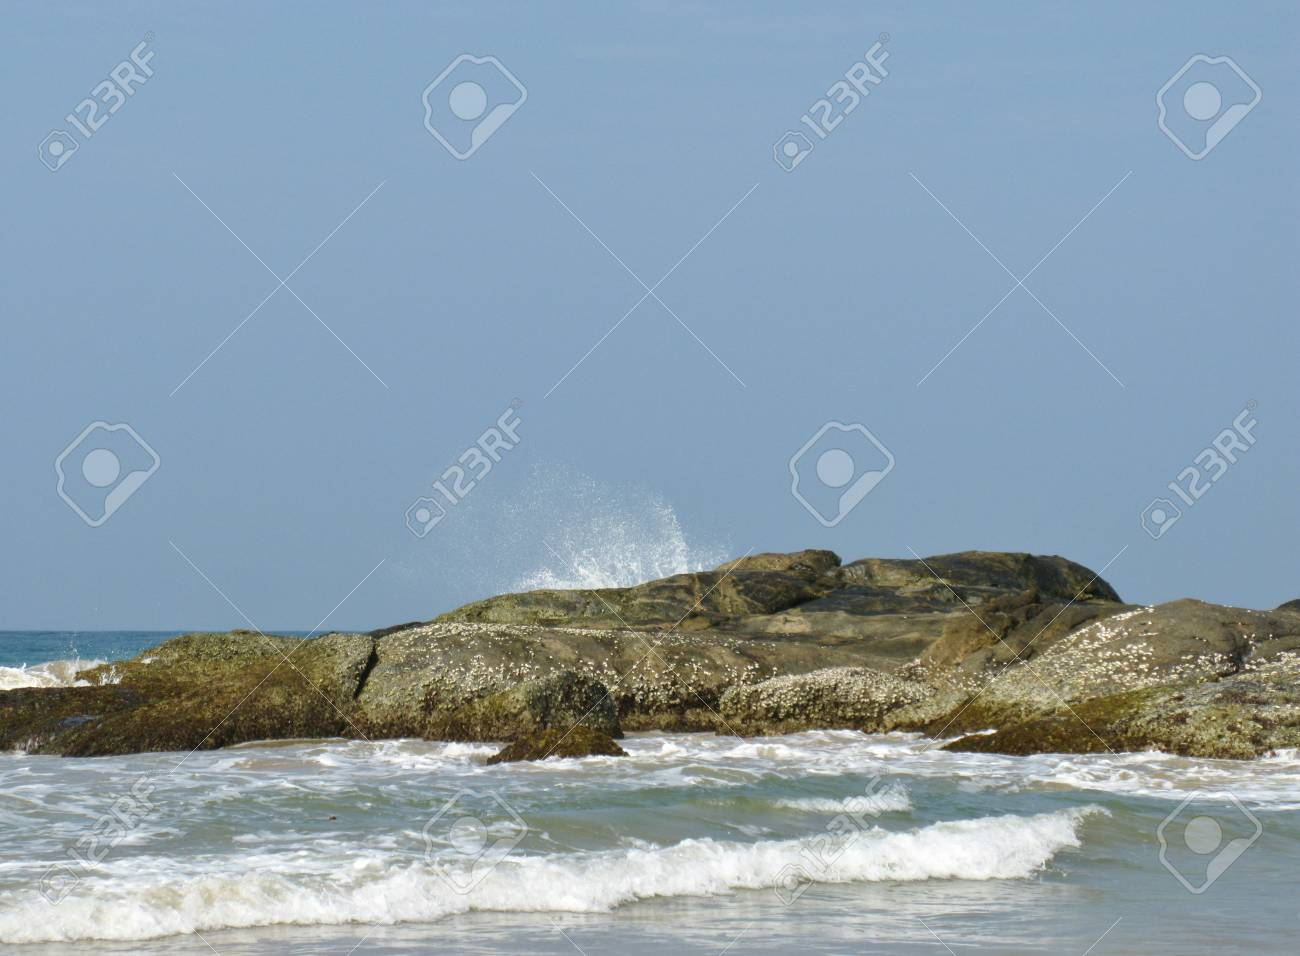 The beach with the rocks and vegetation and the Indian ocean in Sri Lanka Stock Photo - 18288687